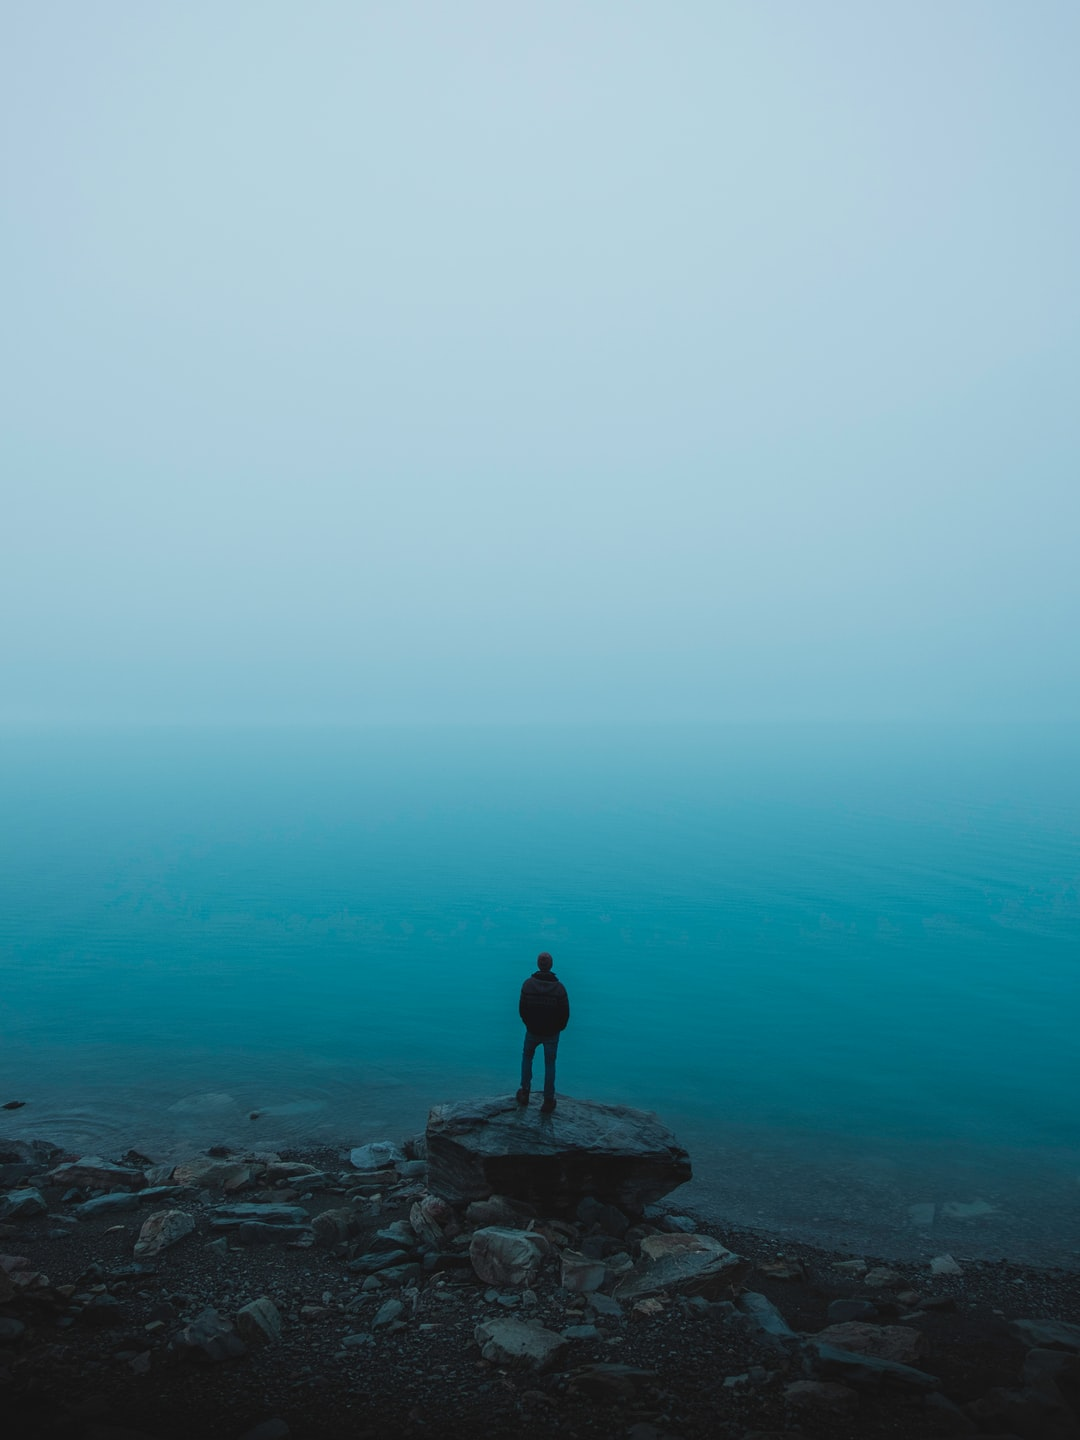 We lived the van life for a few weeks and this was one of the most misty morning we ever had. It's winter here and believe me, it's cold. The heavy fog was ghostly floating over Lake Pukaki and made we wanna capture this unreal moment.